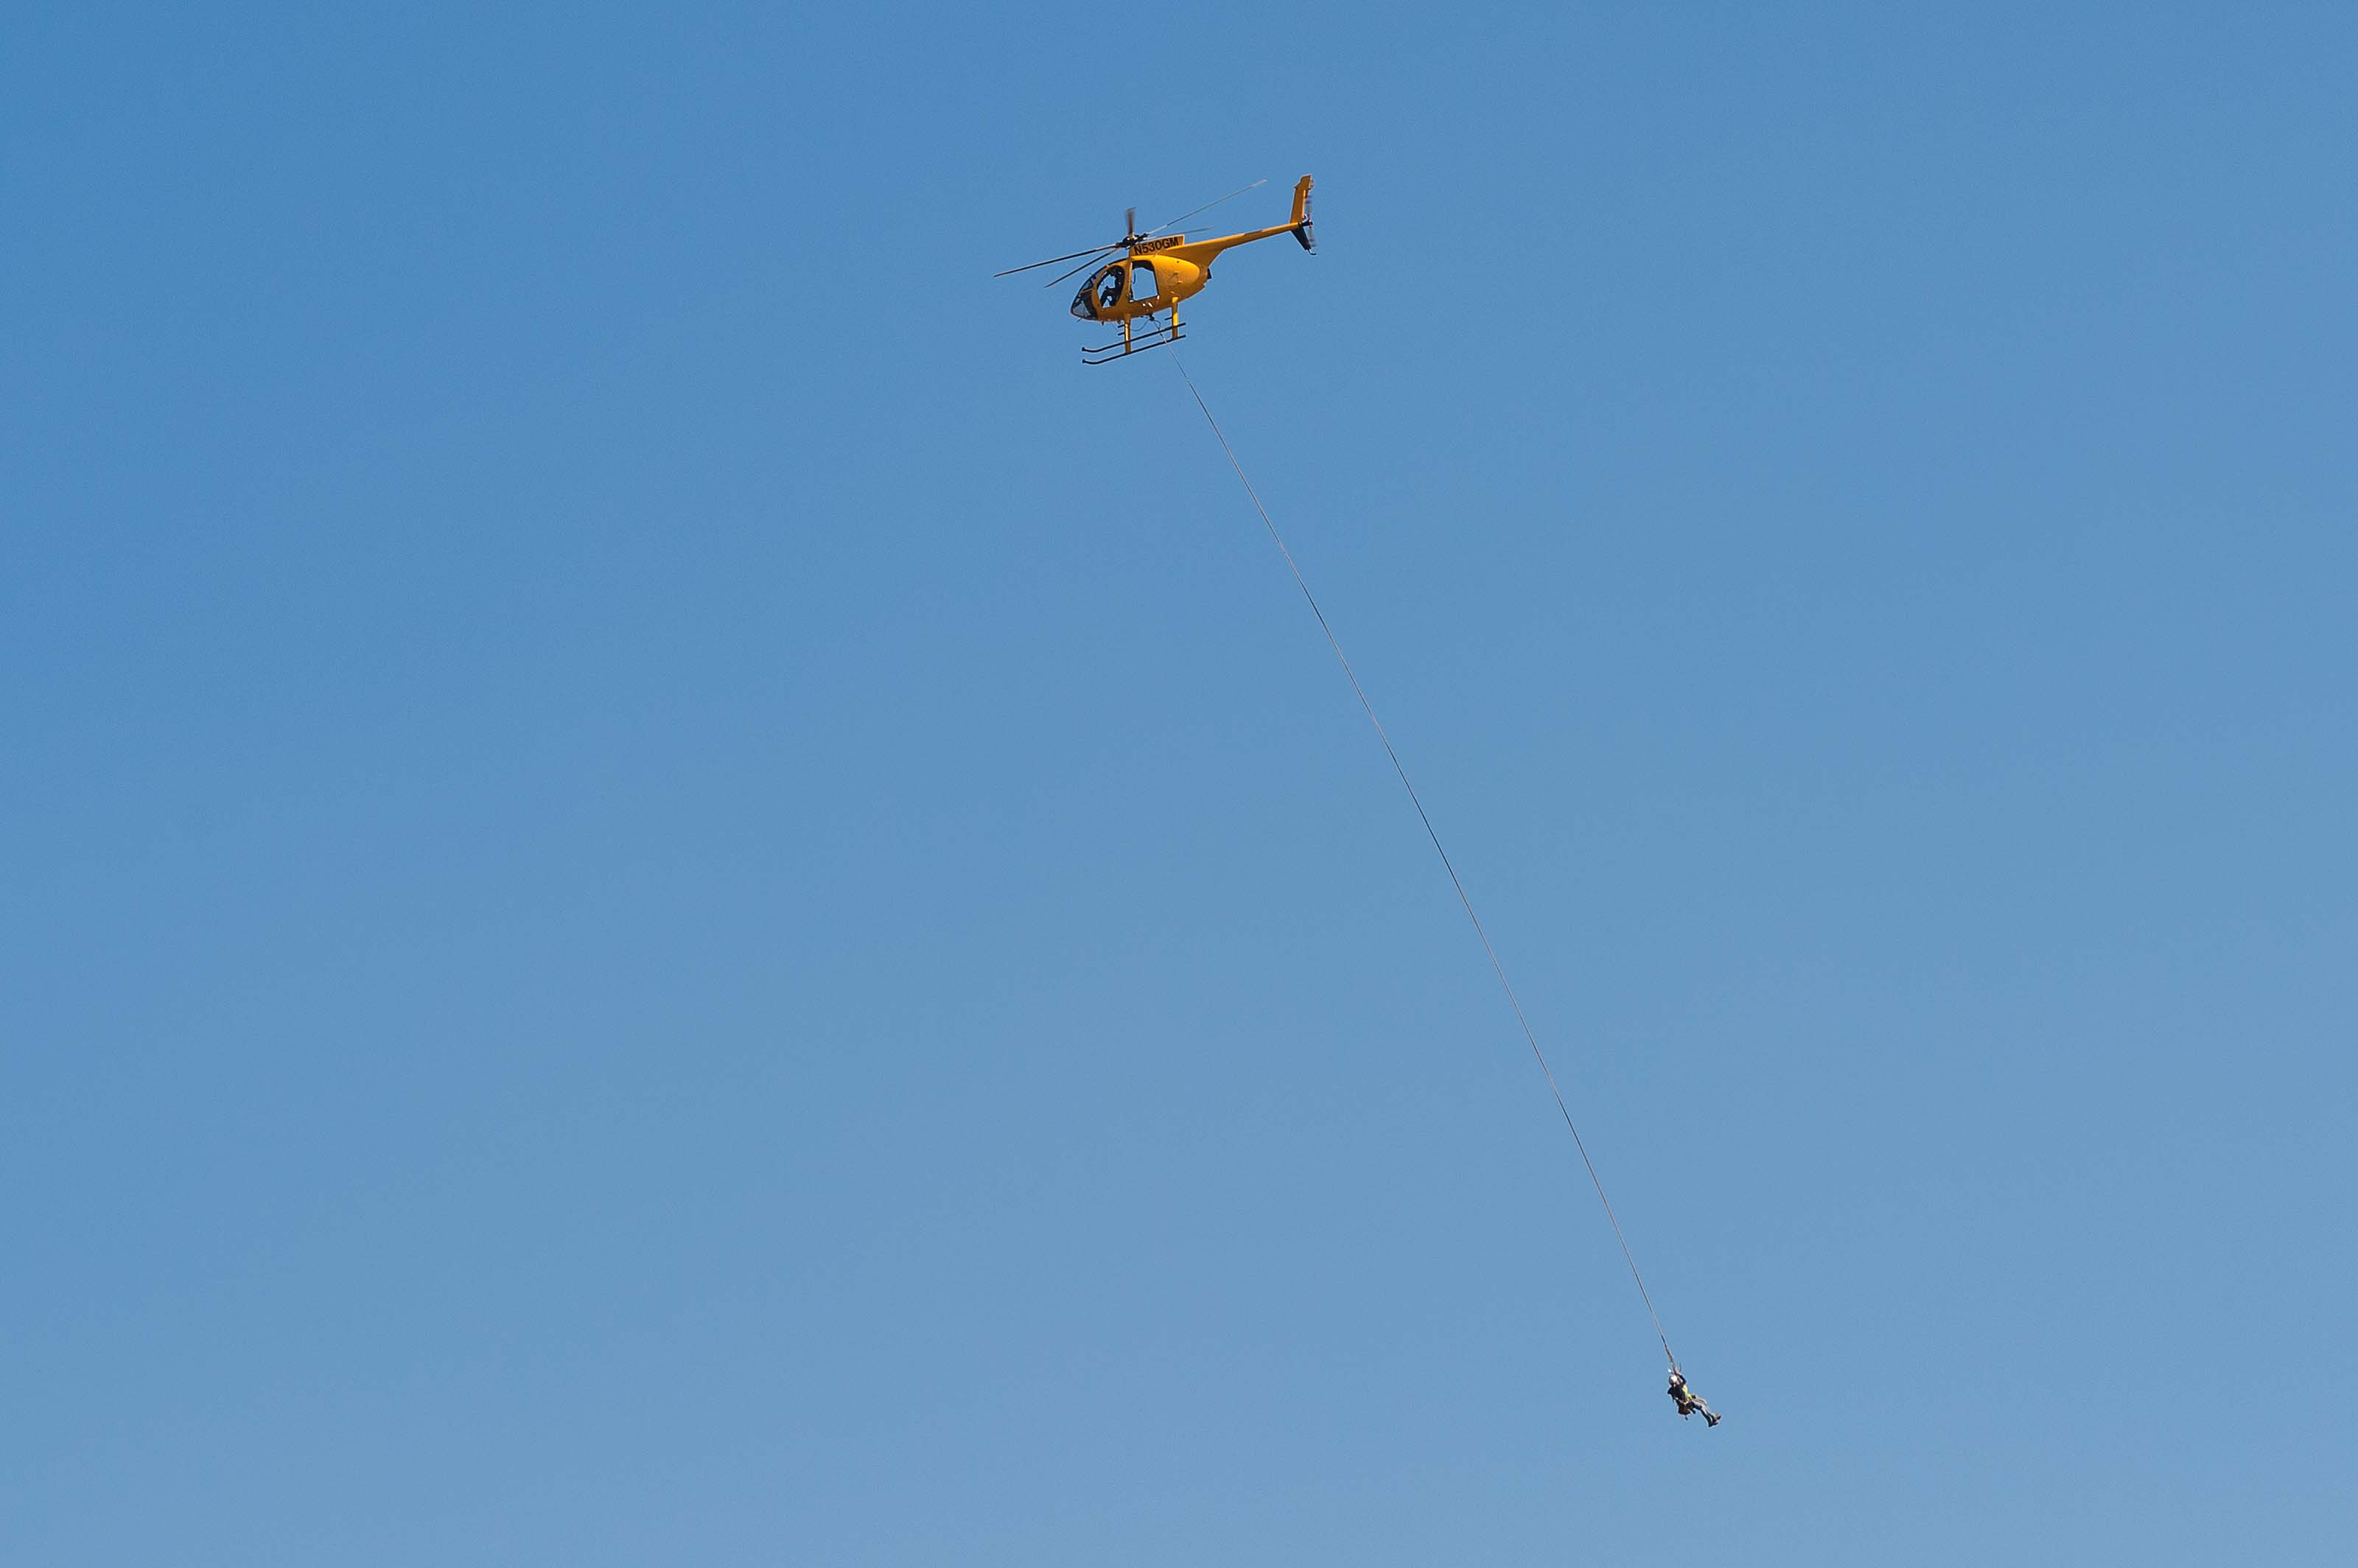 ART OF TRANSIT: I went for a hike in the Angeles National Forest on POTUS Day, looked up and saw this. There are actually two people dangling from the chopper -- they were doing work atop a nearby utility tower/transformer. Photo by Steve Hymon.